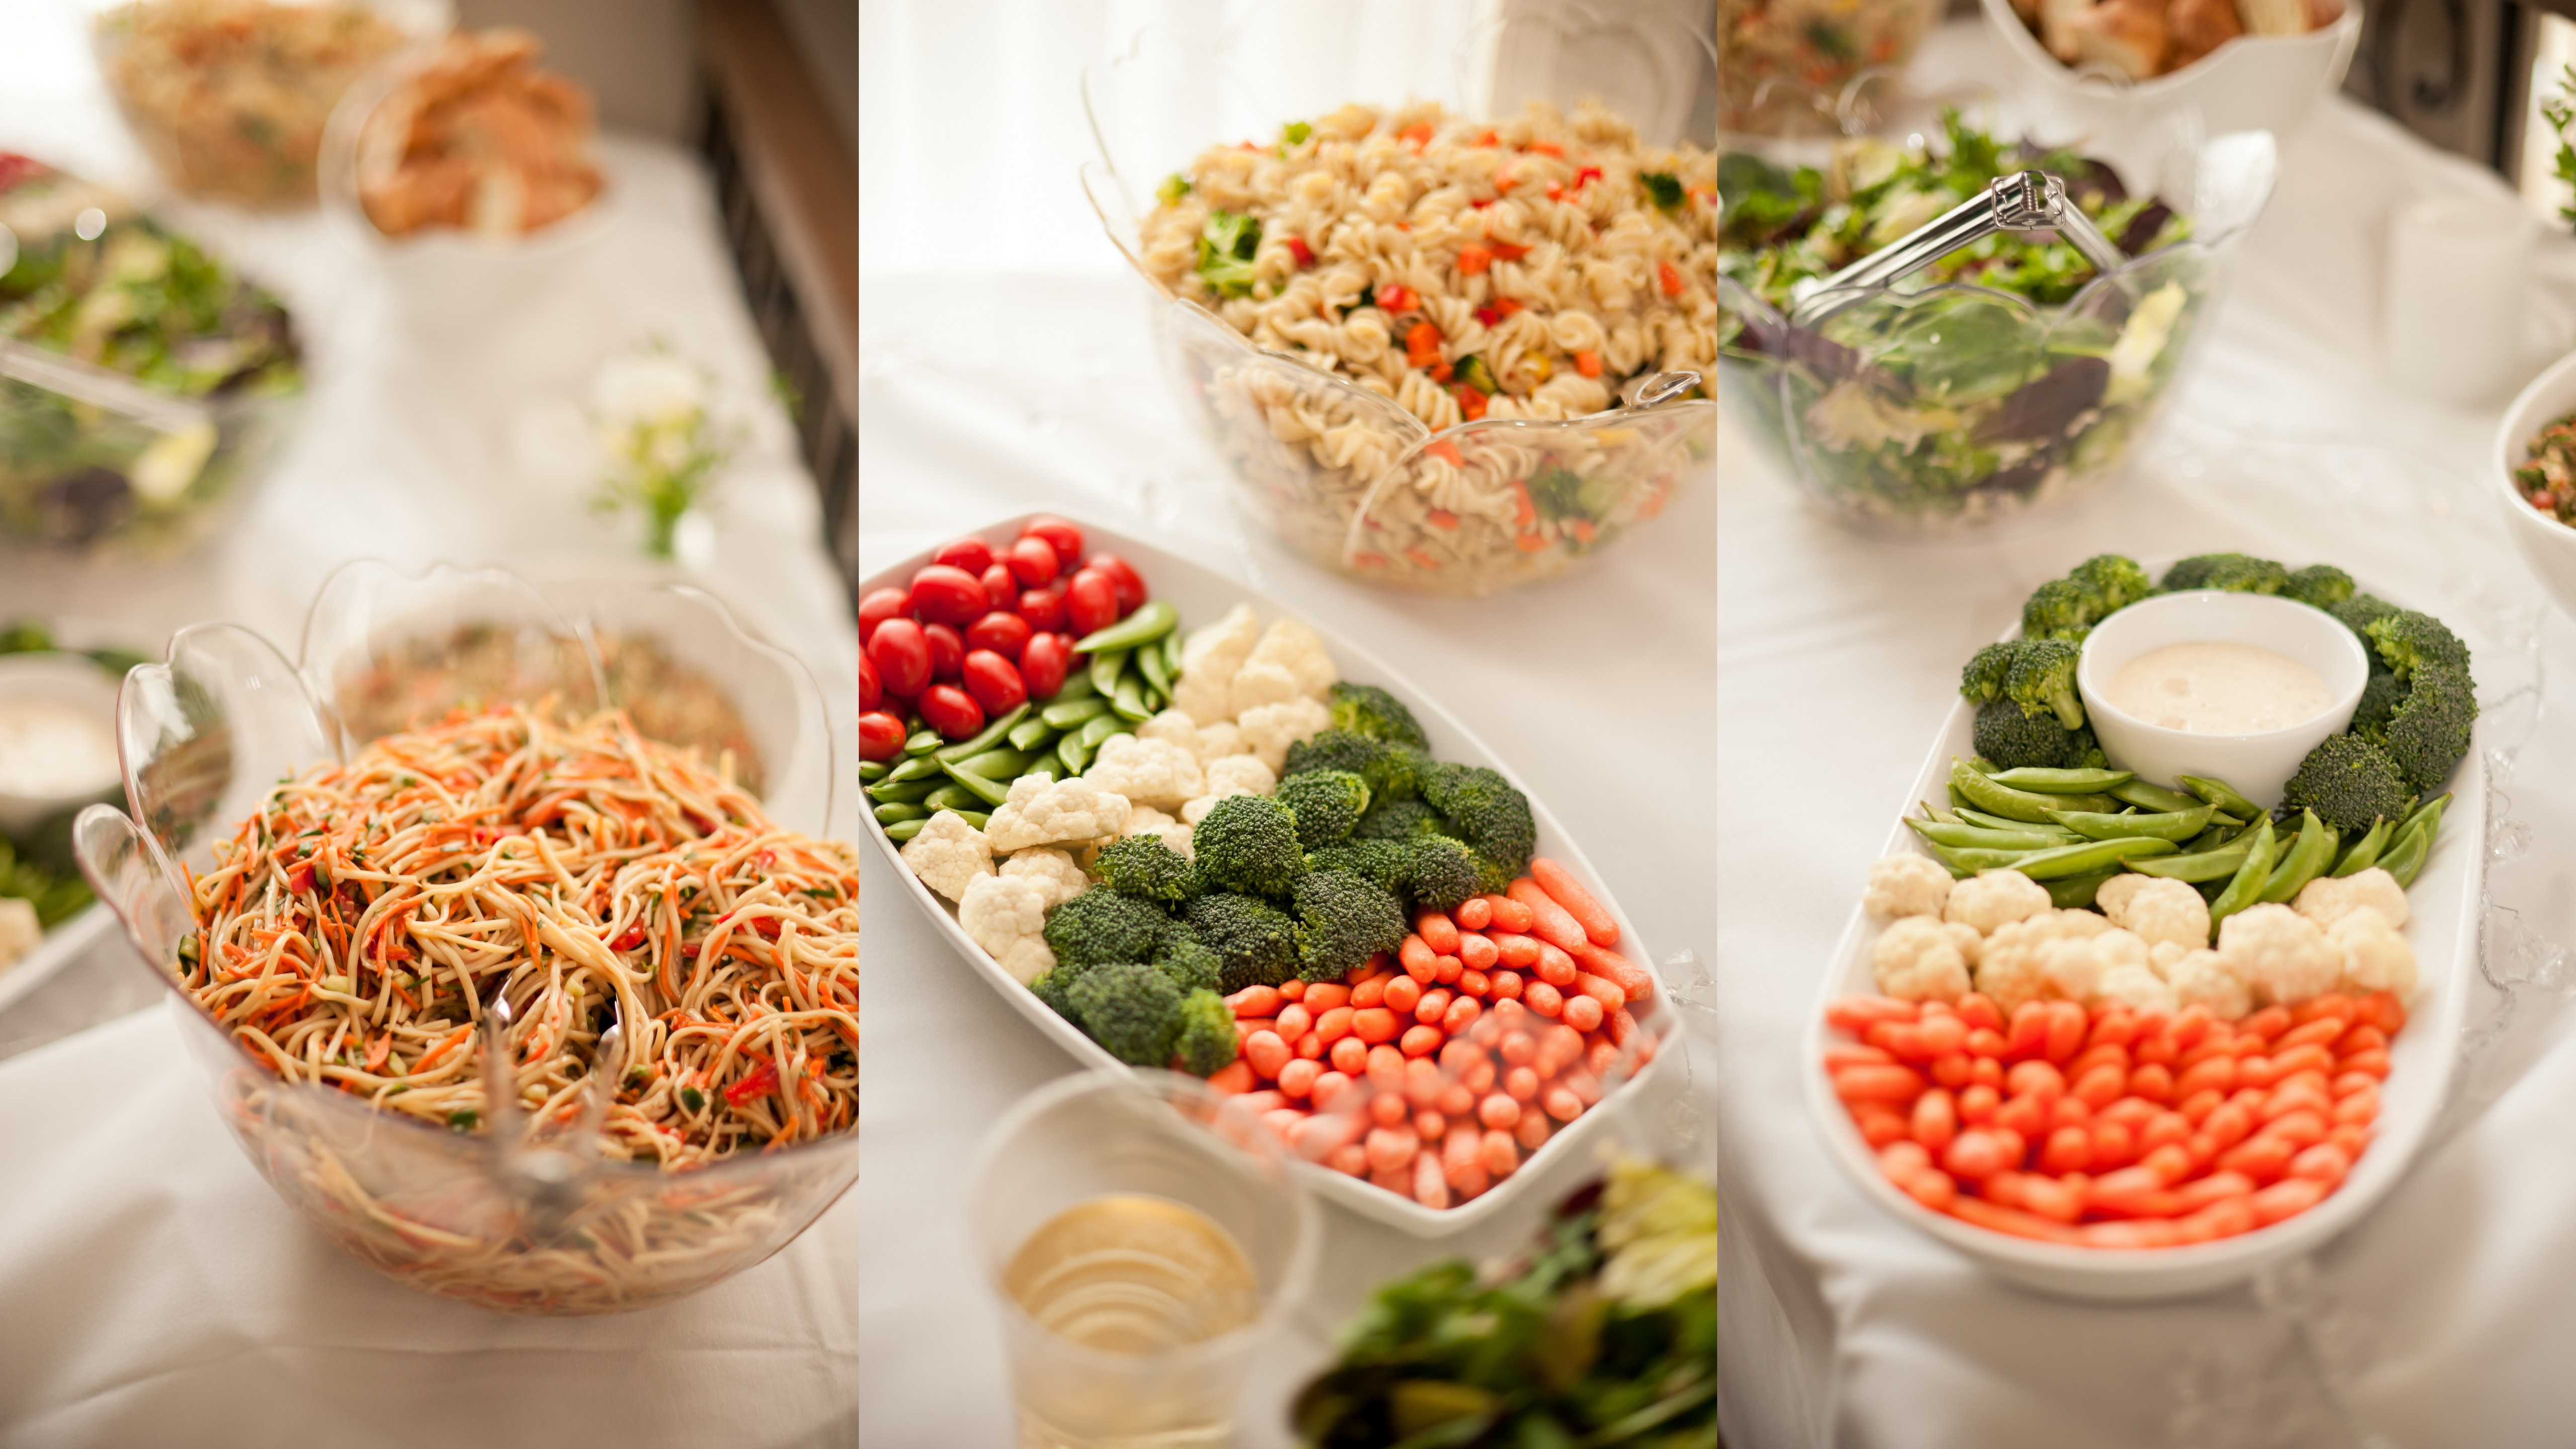 Part Of The Awesome Buffet Spread We Created Images